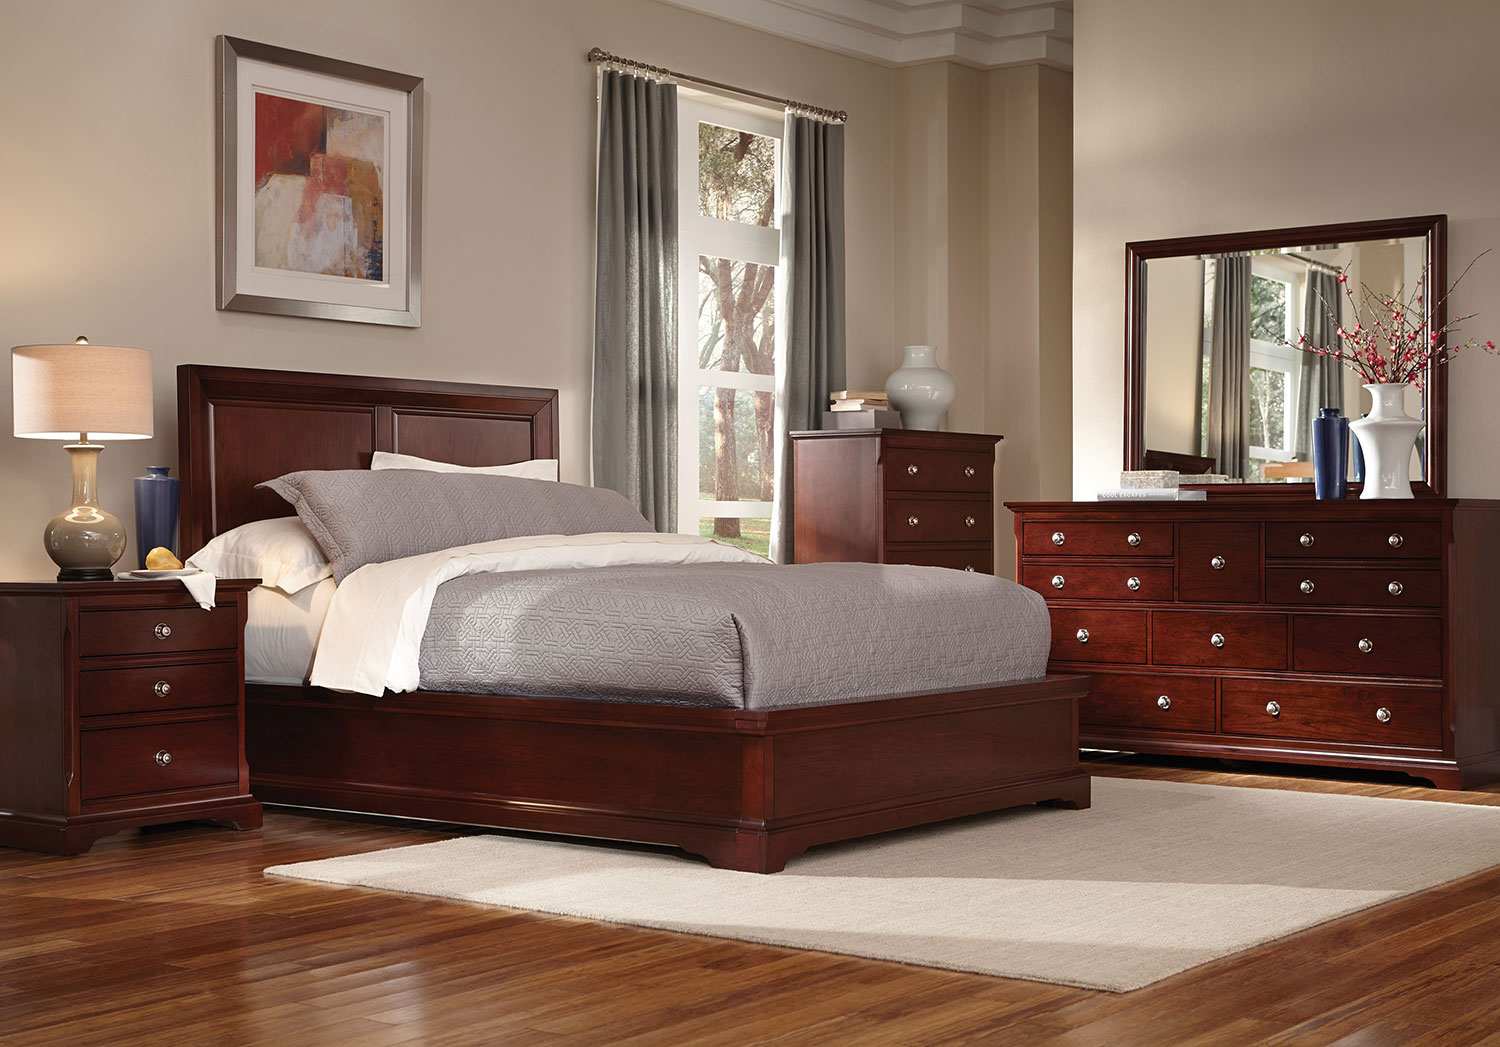 bedroom levin furniture 12080 | 480235 fit inside 320 320 composite to center center 320 320 background color white